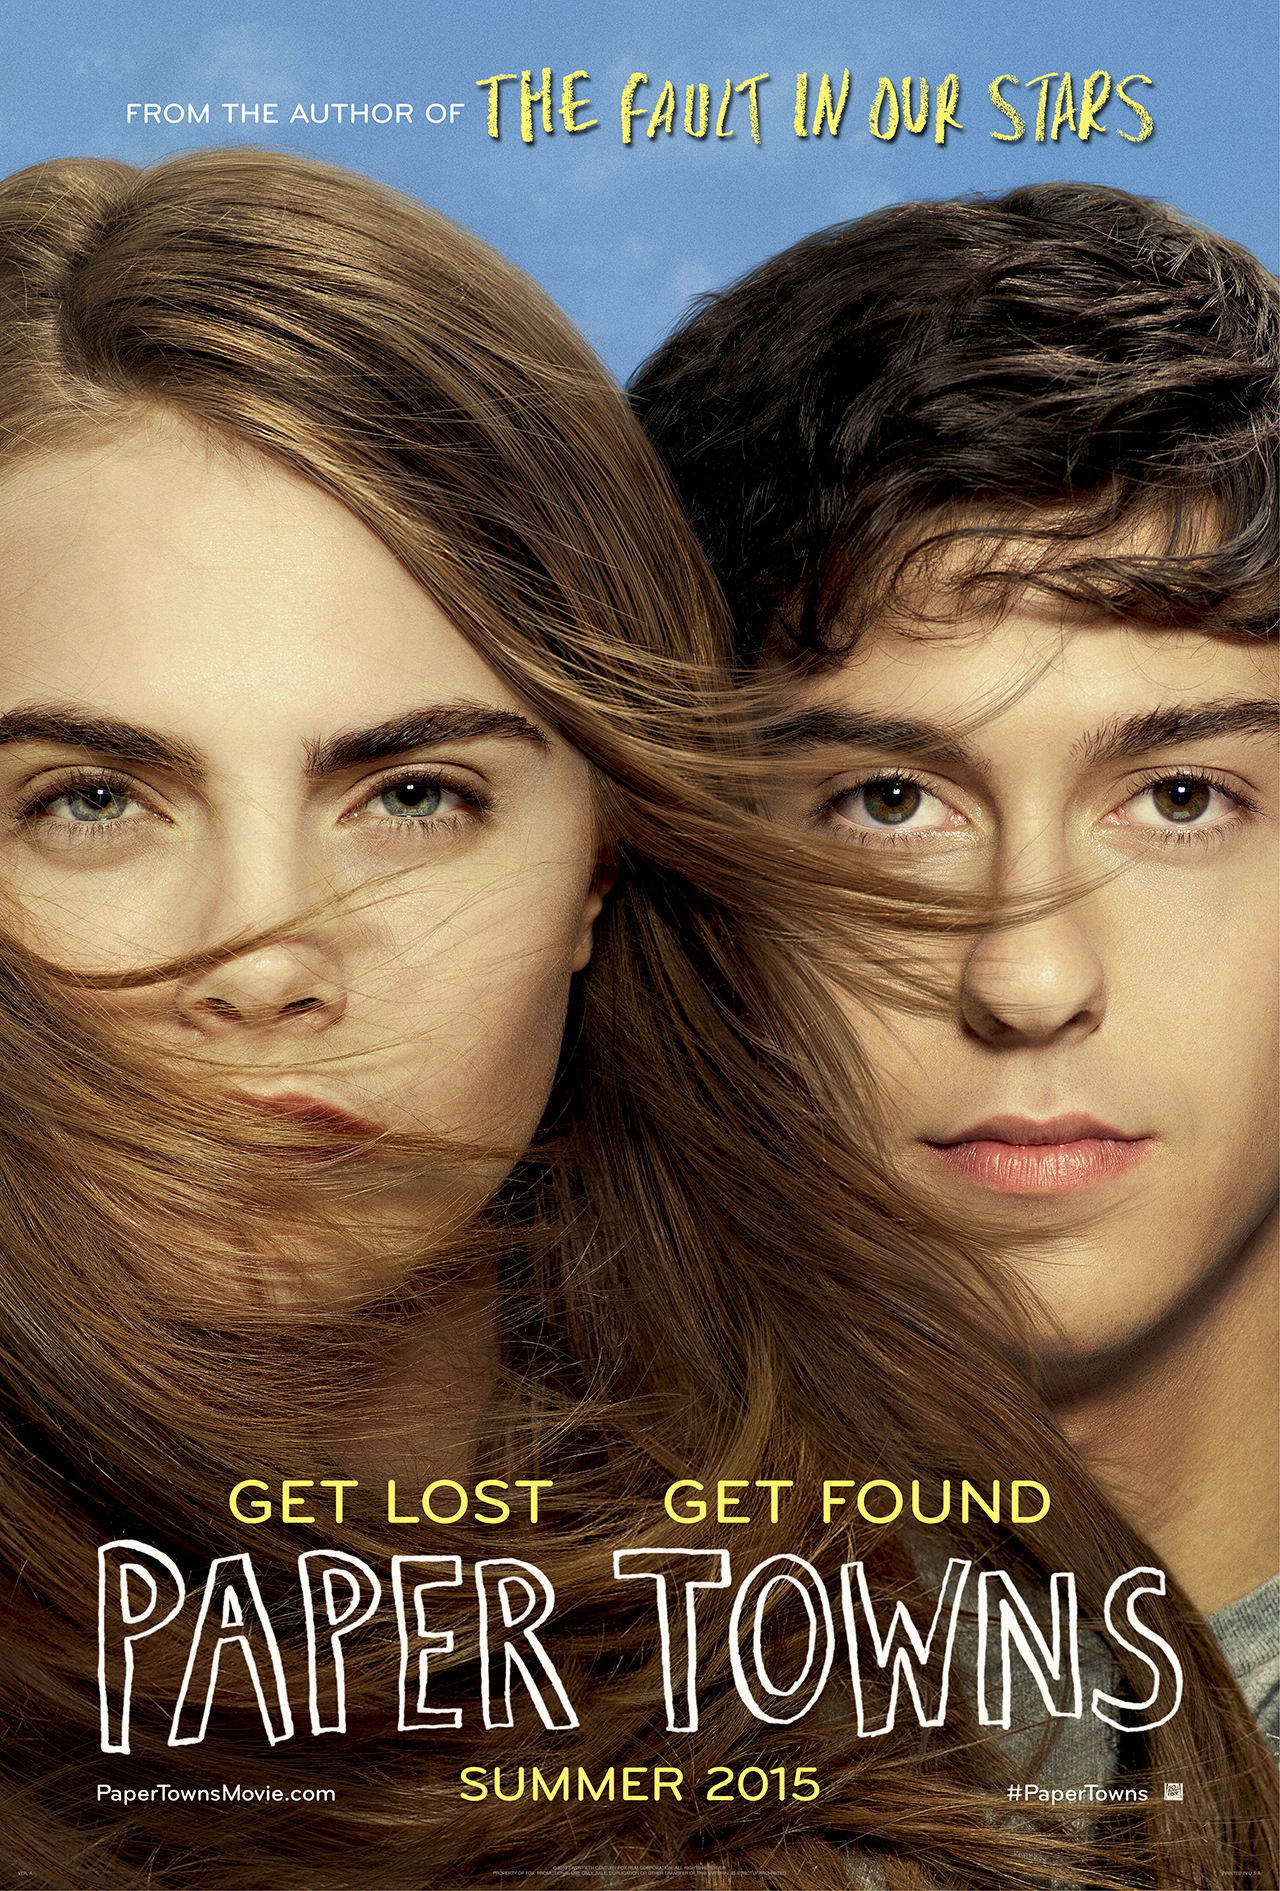 'Paper Towns' was filmed in part in and around Concord and Charlotte, North Carolina.